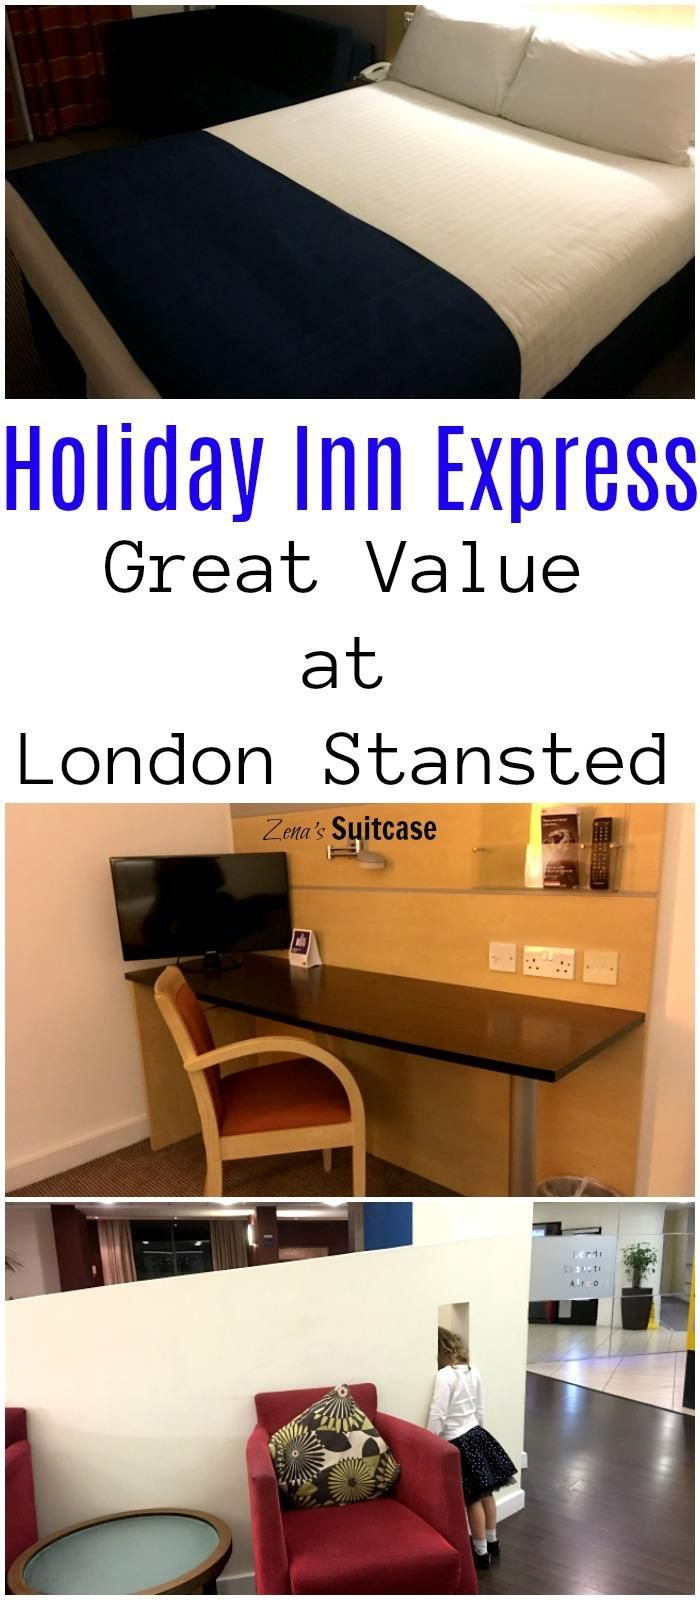 London Stansted Hotel - Holiday Inn Express review: We stayed with Holiday Inn Express at London Stansted Airport before and after taking a trip from the airport. We stayed at the hotel with children and parked the car during our stay and while we were away. This review covers our experience and some helpful information about staying at the hotel